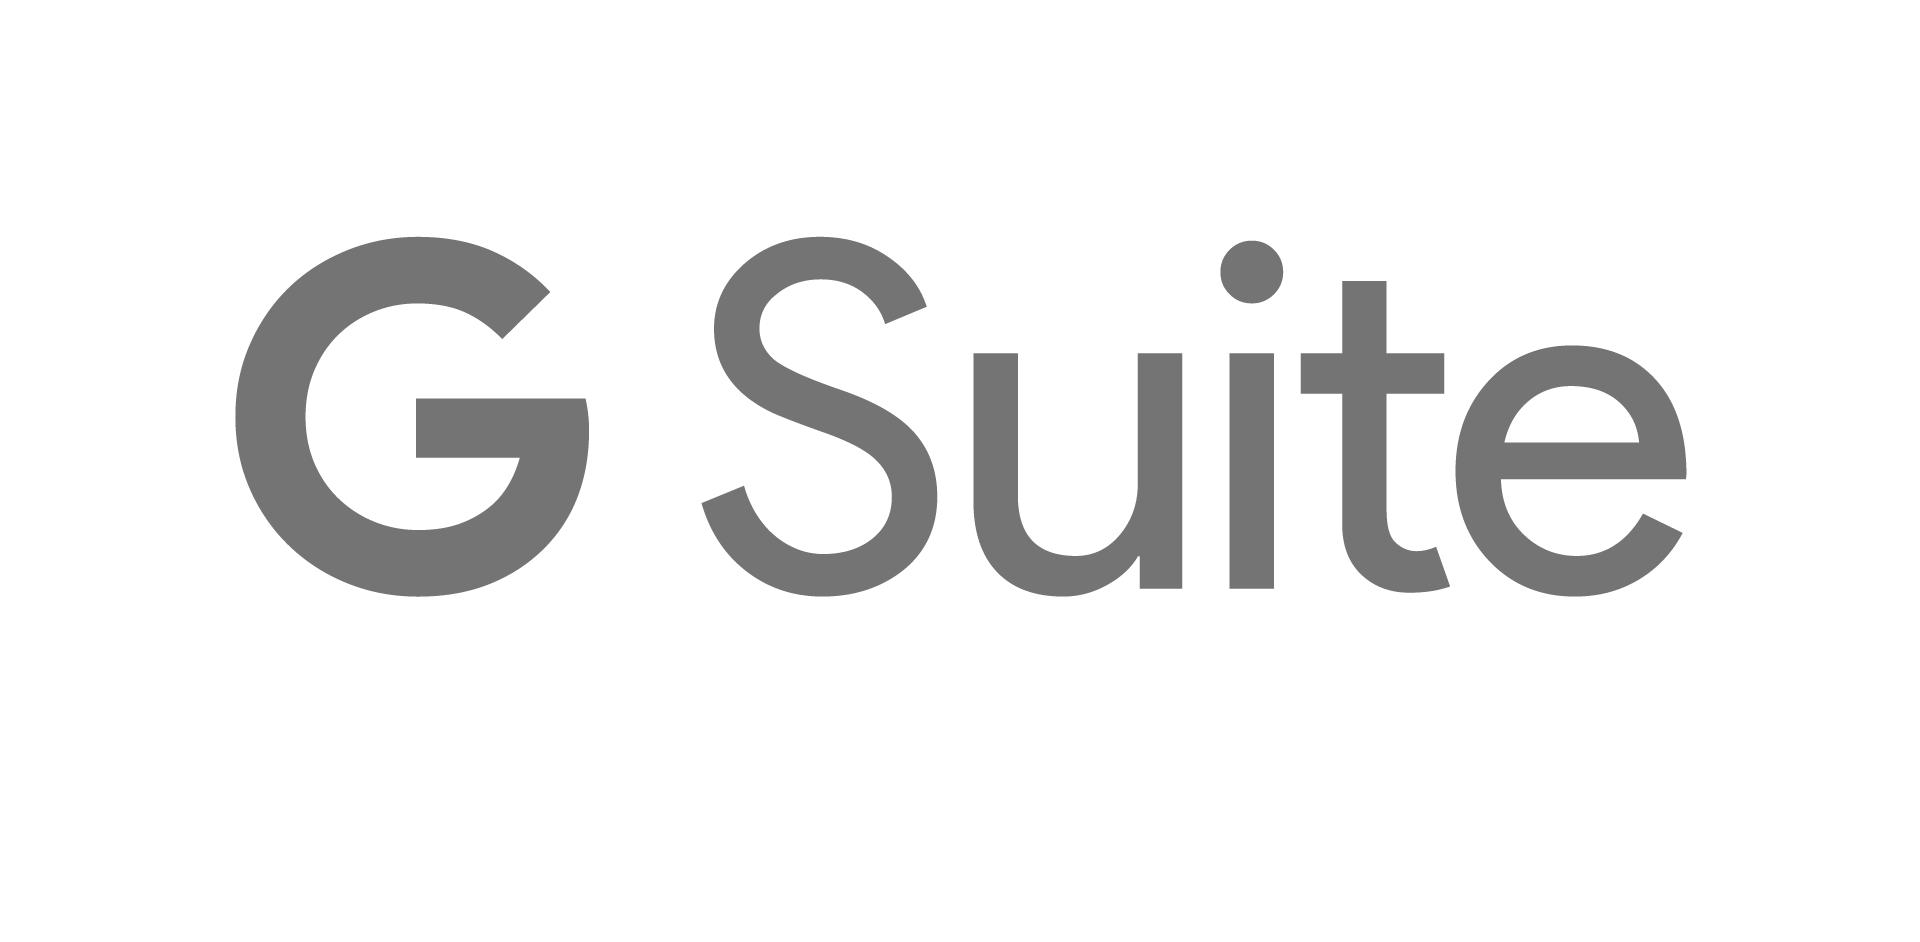 g-suite-logo-dark-png